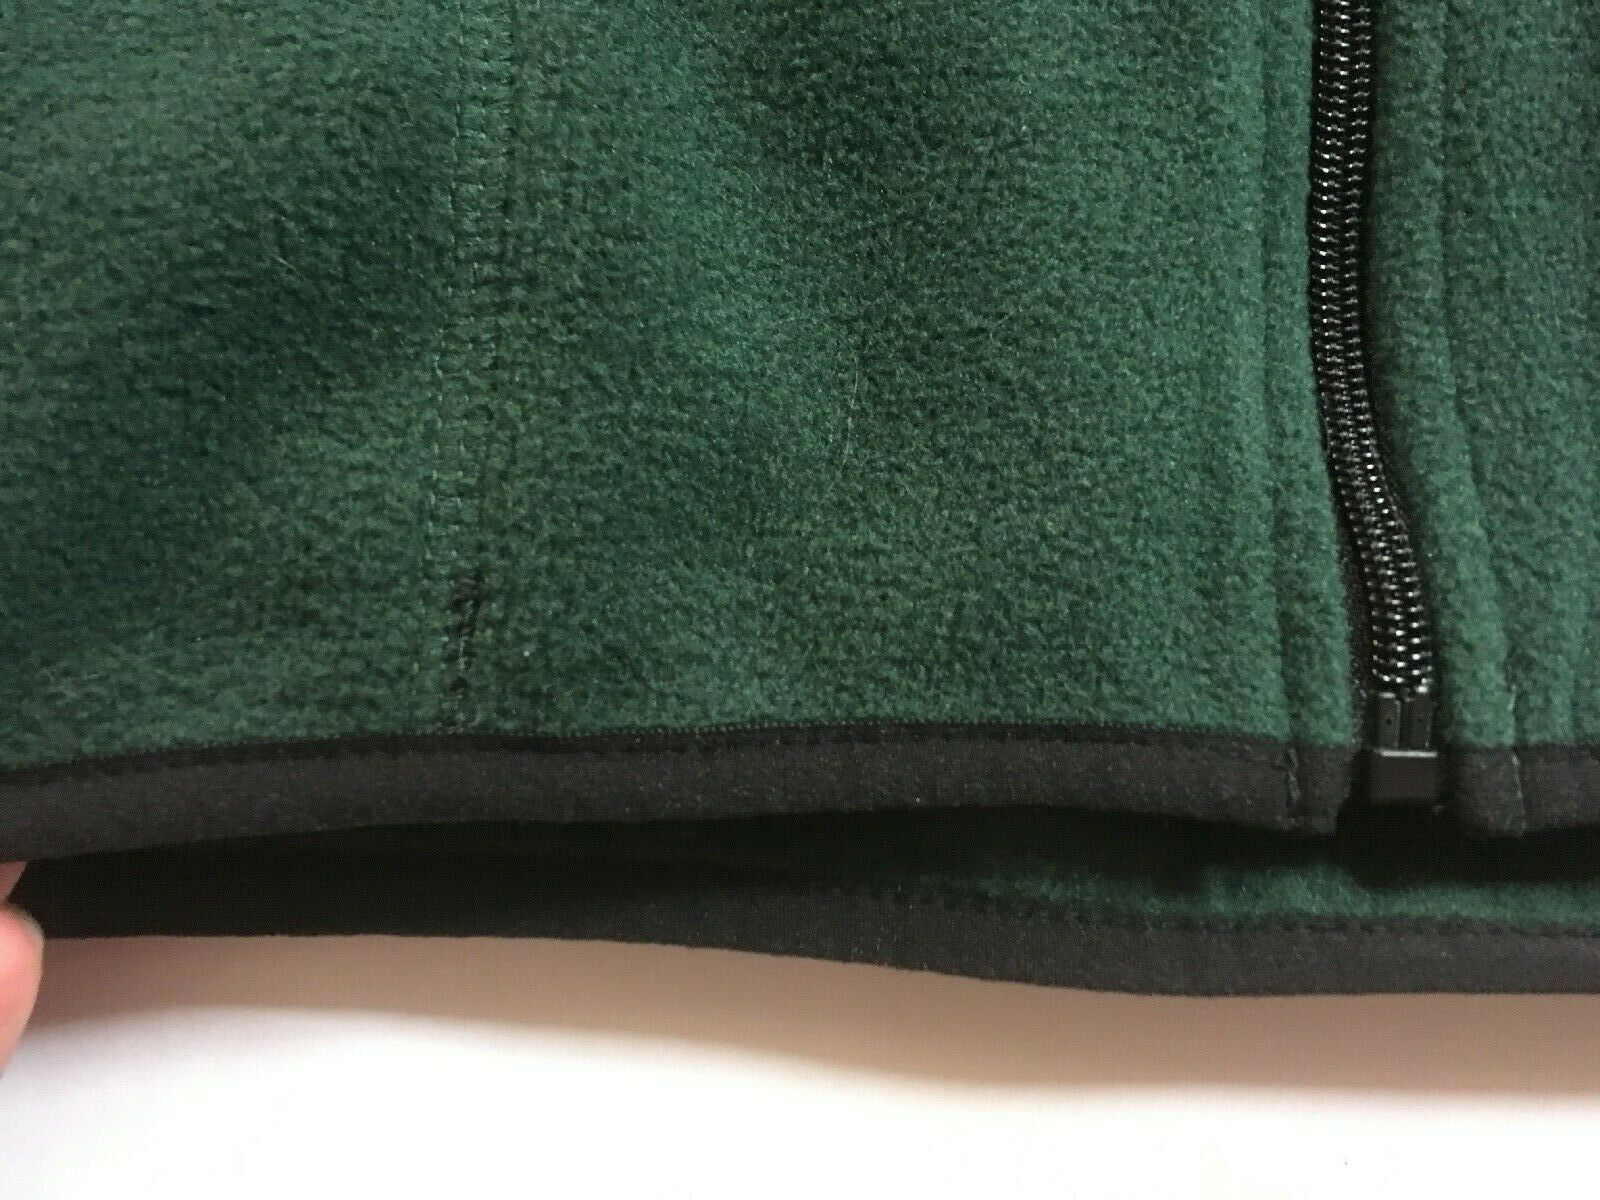 IZOD Full-Zip Polar Fleece Jacket Big & Tall Hunter Green w/ Black Trim 2XLT $70 image 6